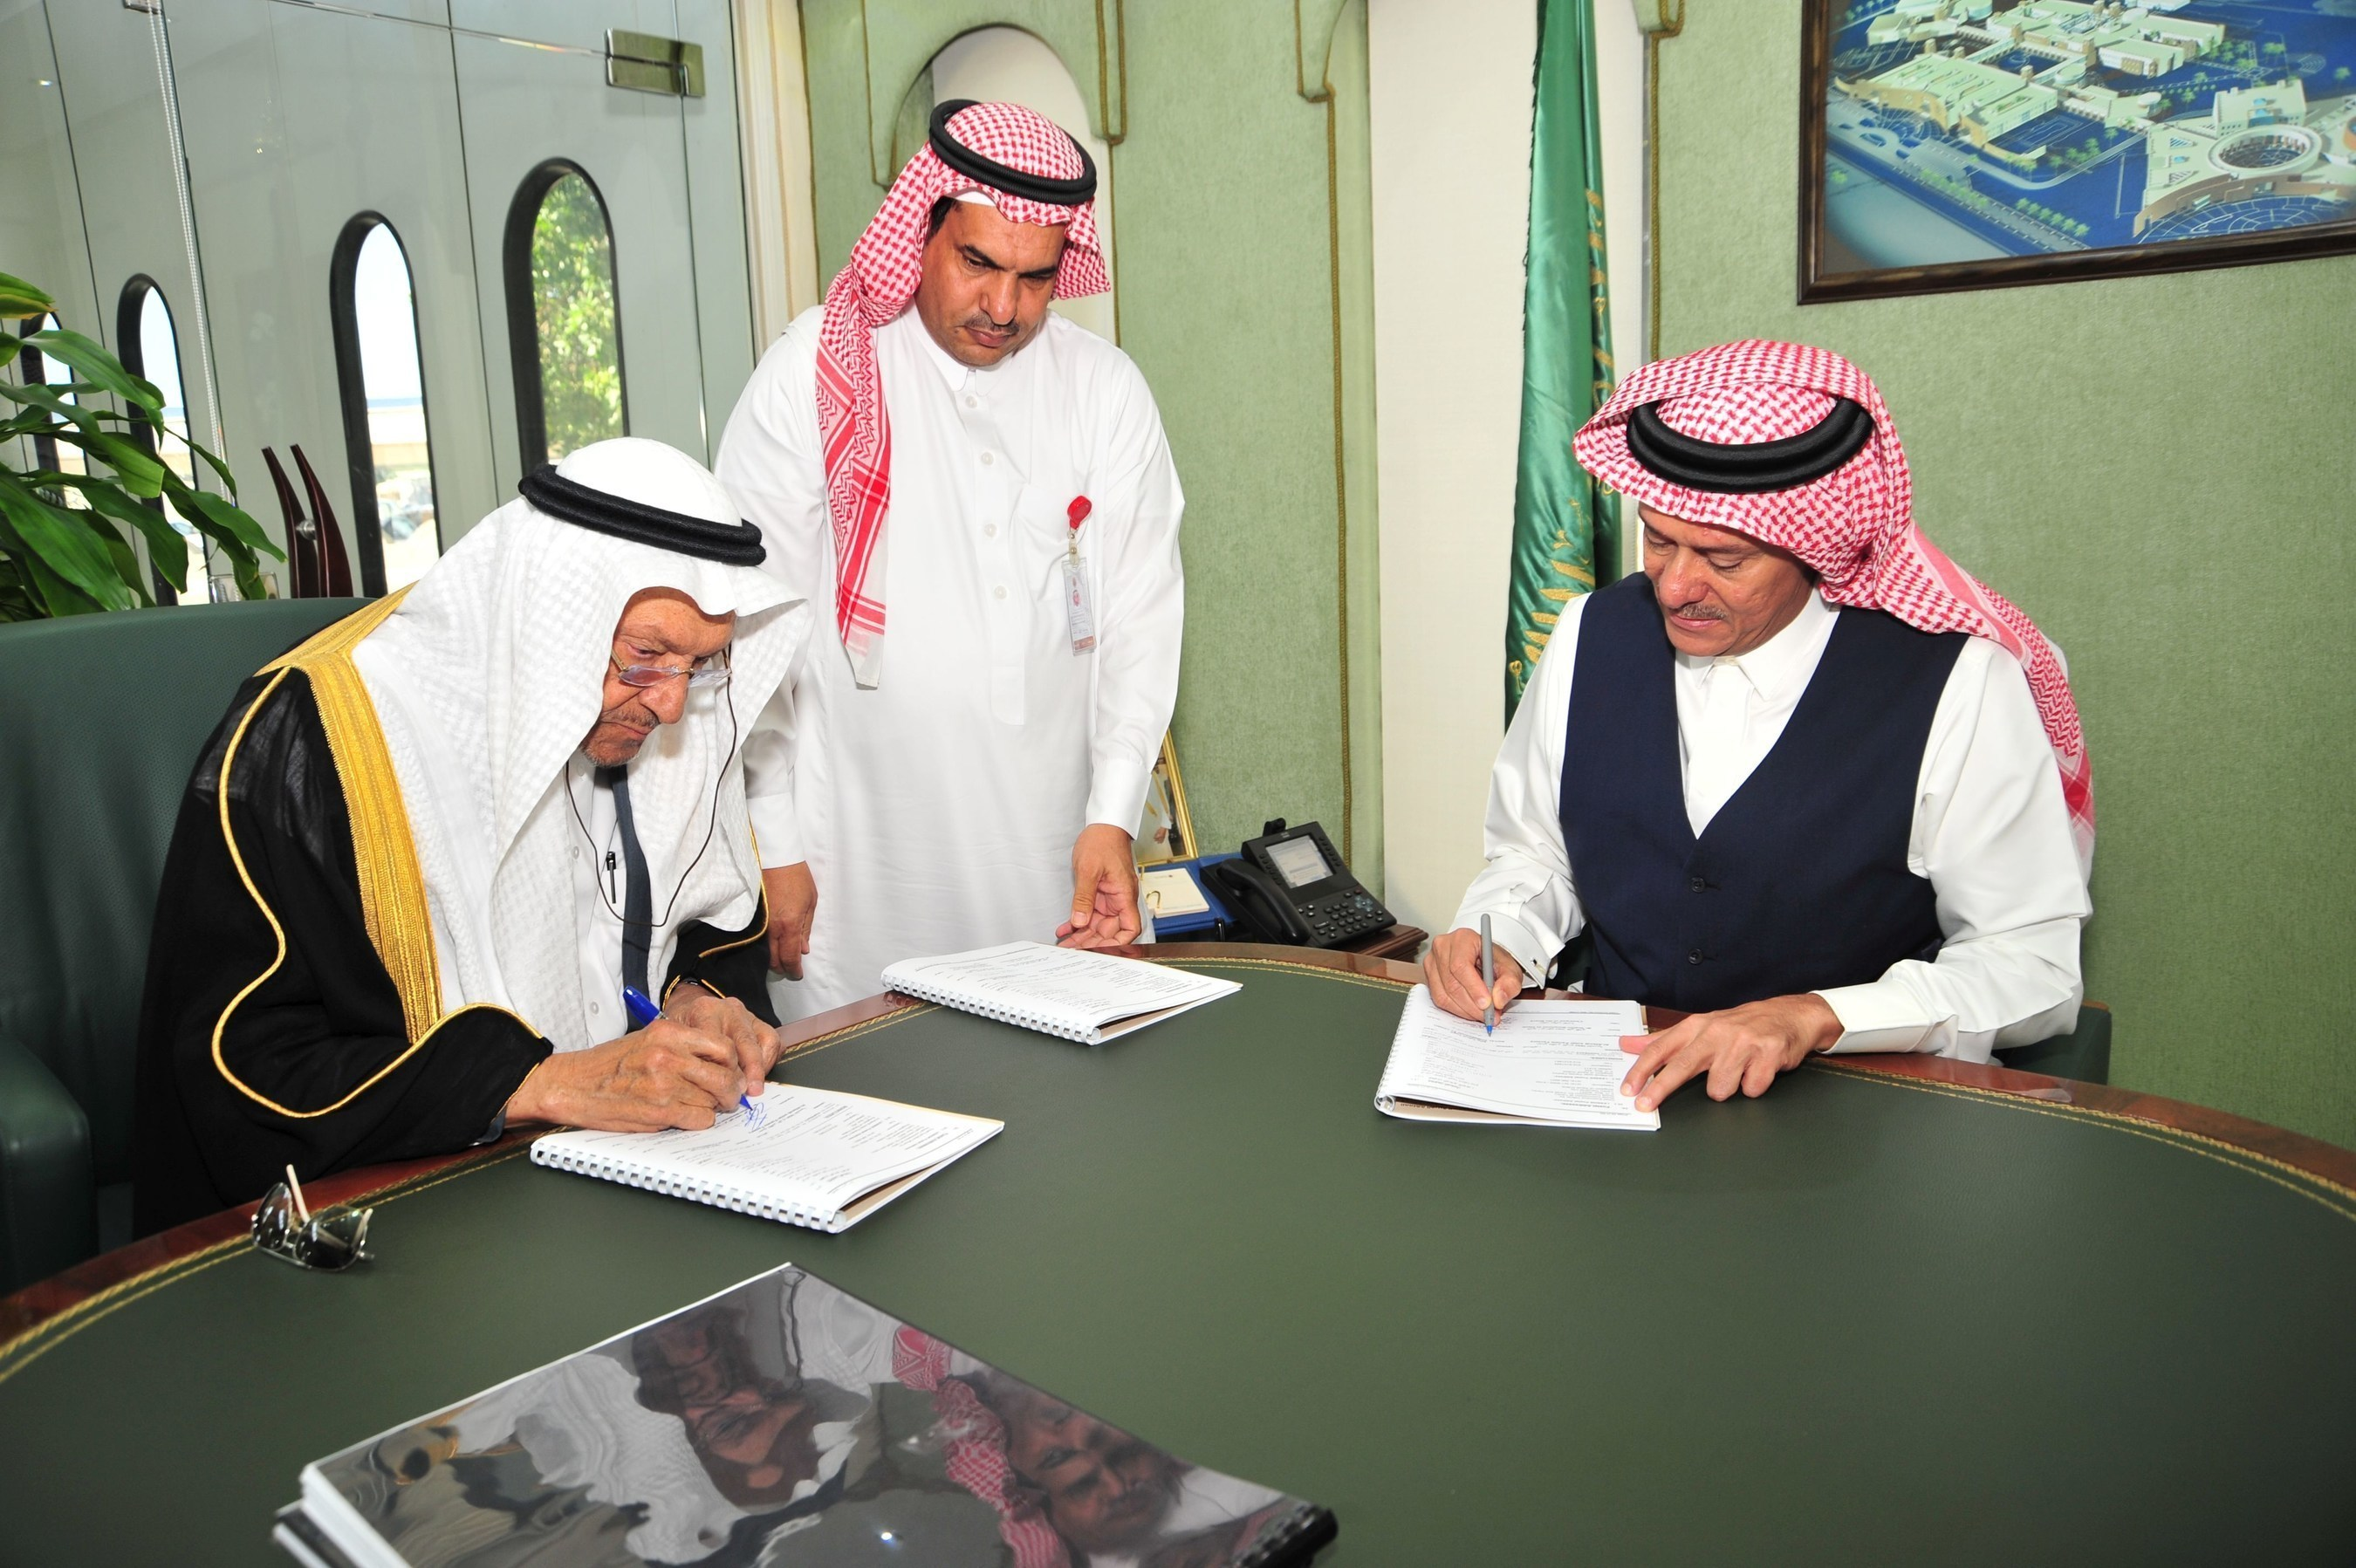 Part of the signing of the contract between the CEO of the Royal commission in Yanbu Dr. A'laa Naseef and the chairman of the board of Al-Afandi group Shiekh Ibrahim Al-Afandi. (PRNewsFoto/Al-afandi Group) (PRNewsFoto/Al-afandi Group)